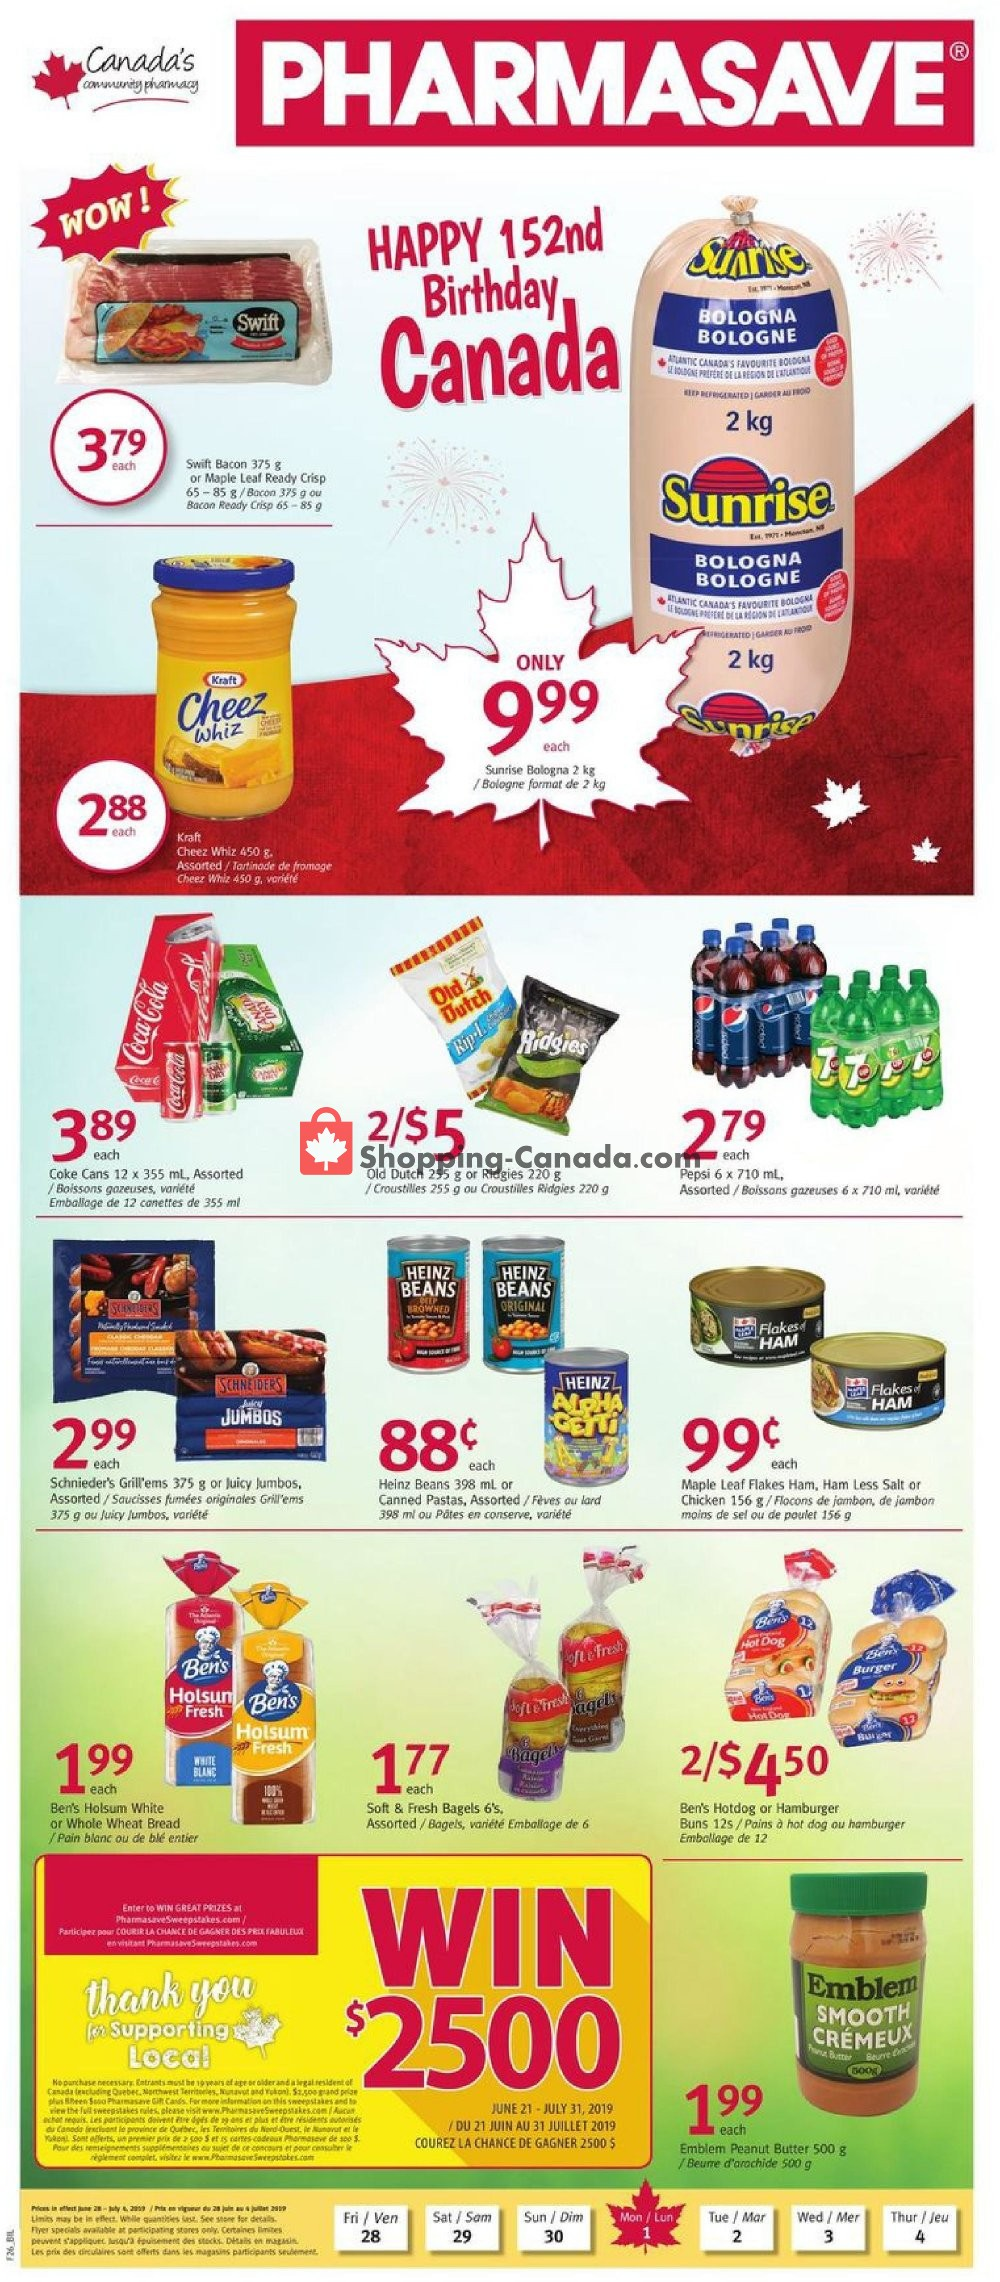 Flyer Pharmasave Canada - from Friday June 28, 2019 to Thursday July 4, 2019